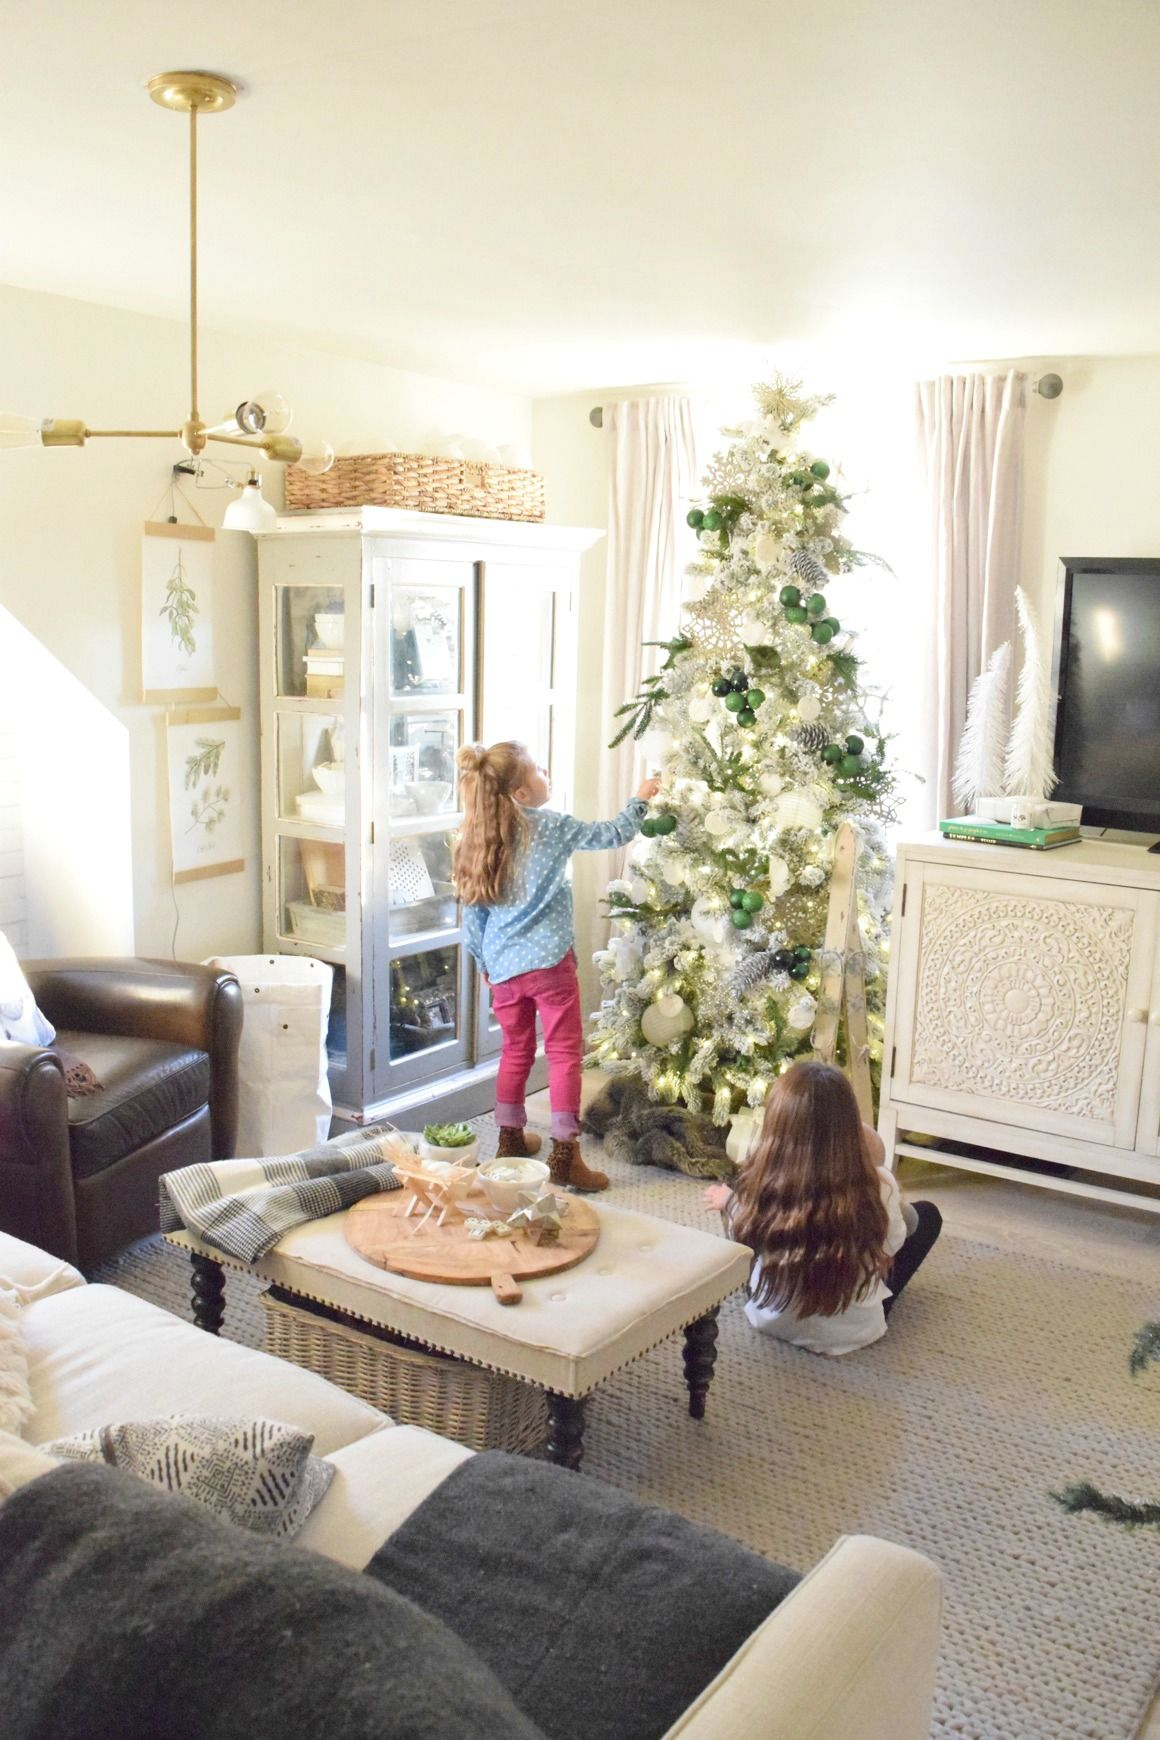 Christmas Home Tour- Part II | Small spaces, Spaces and Holidays